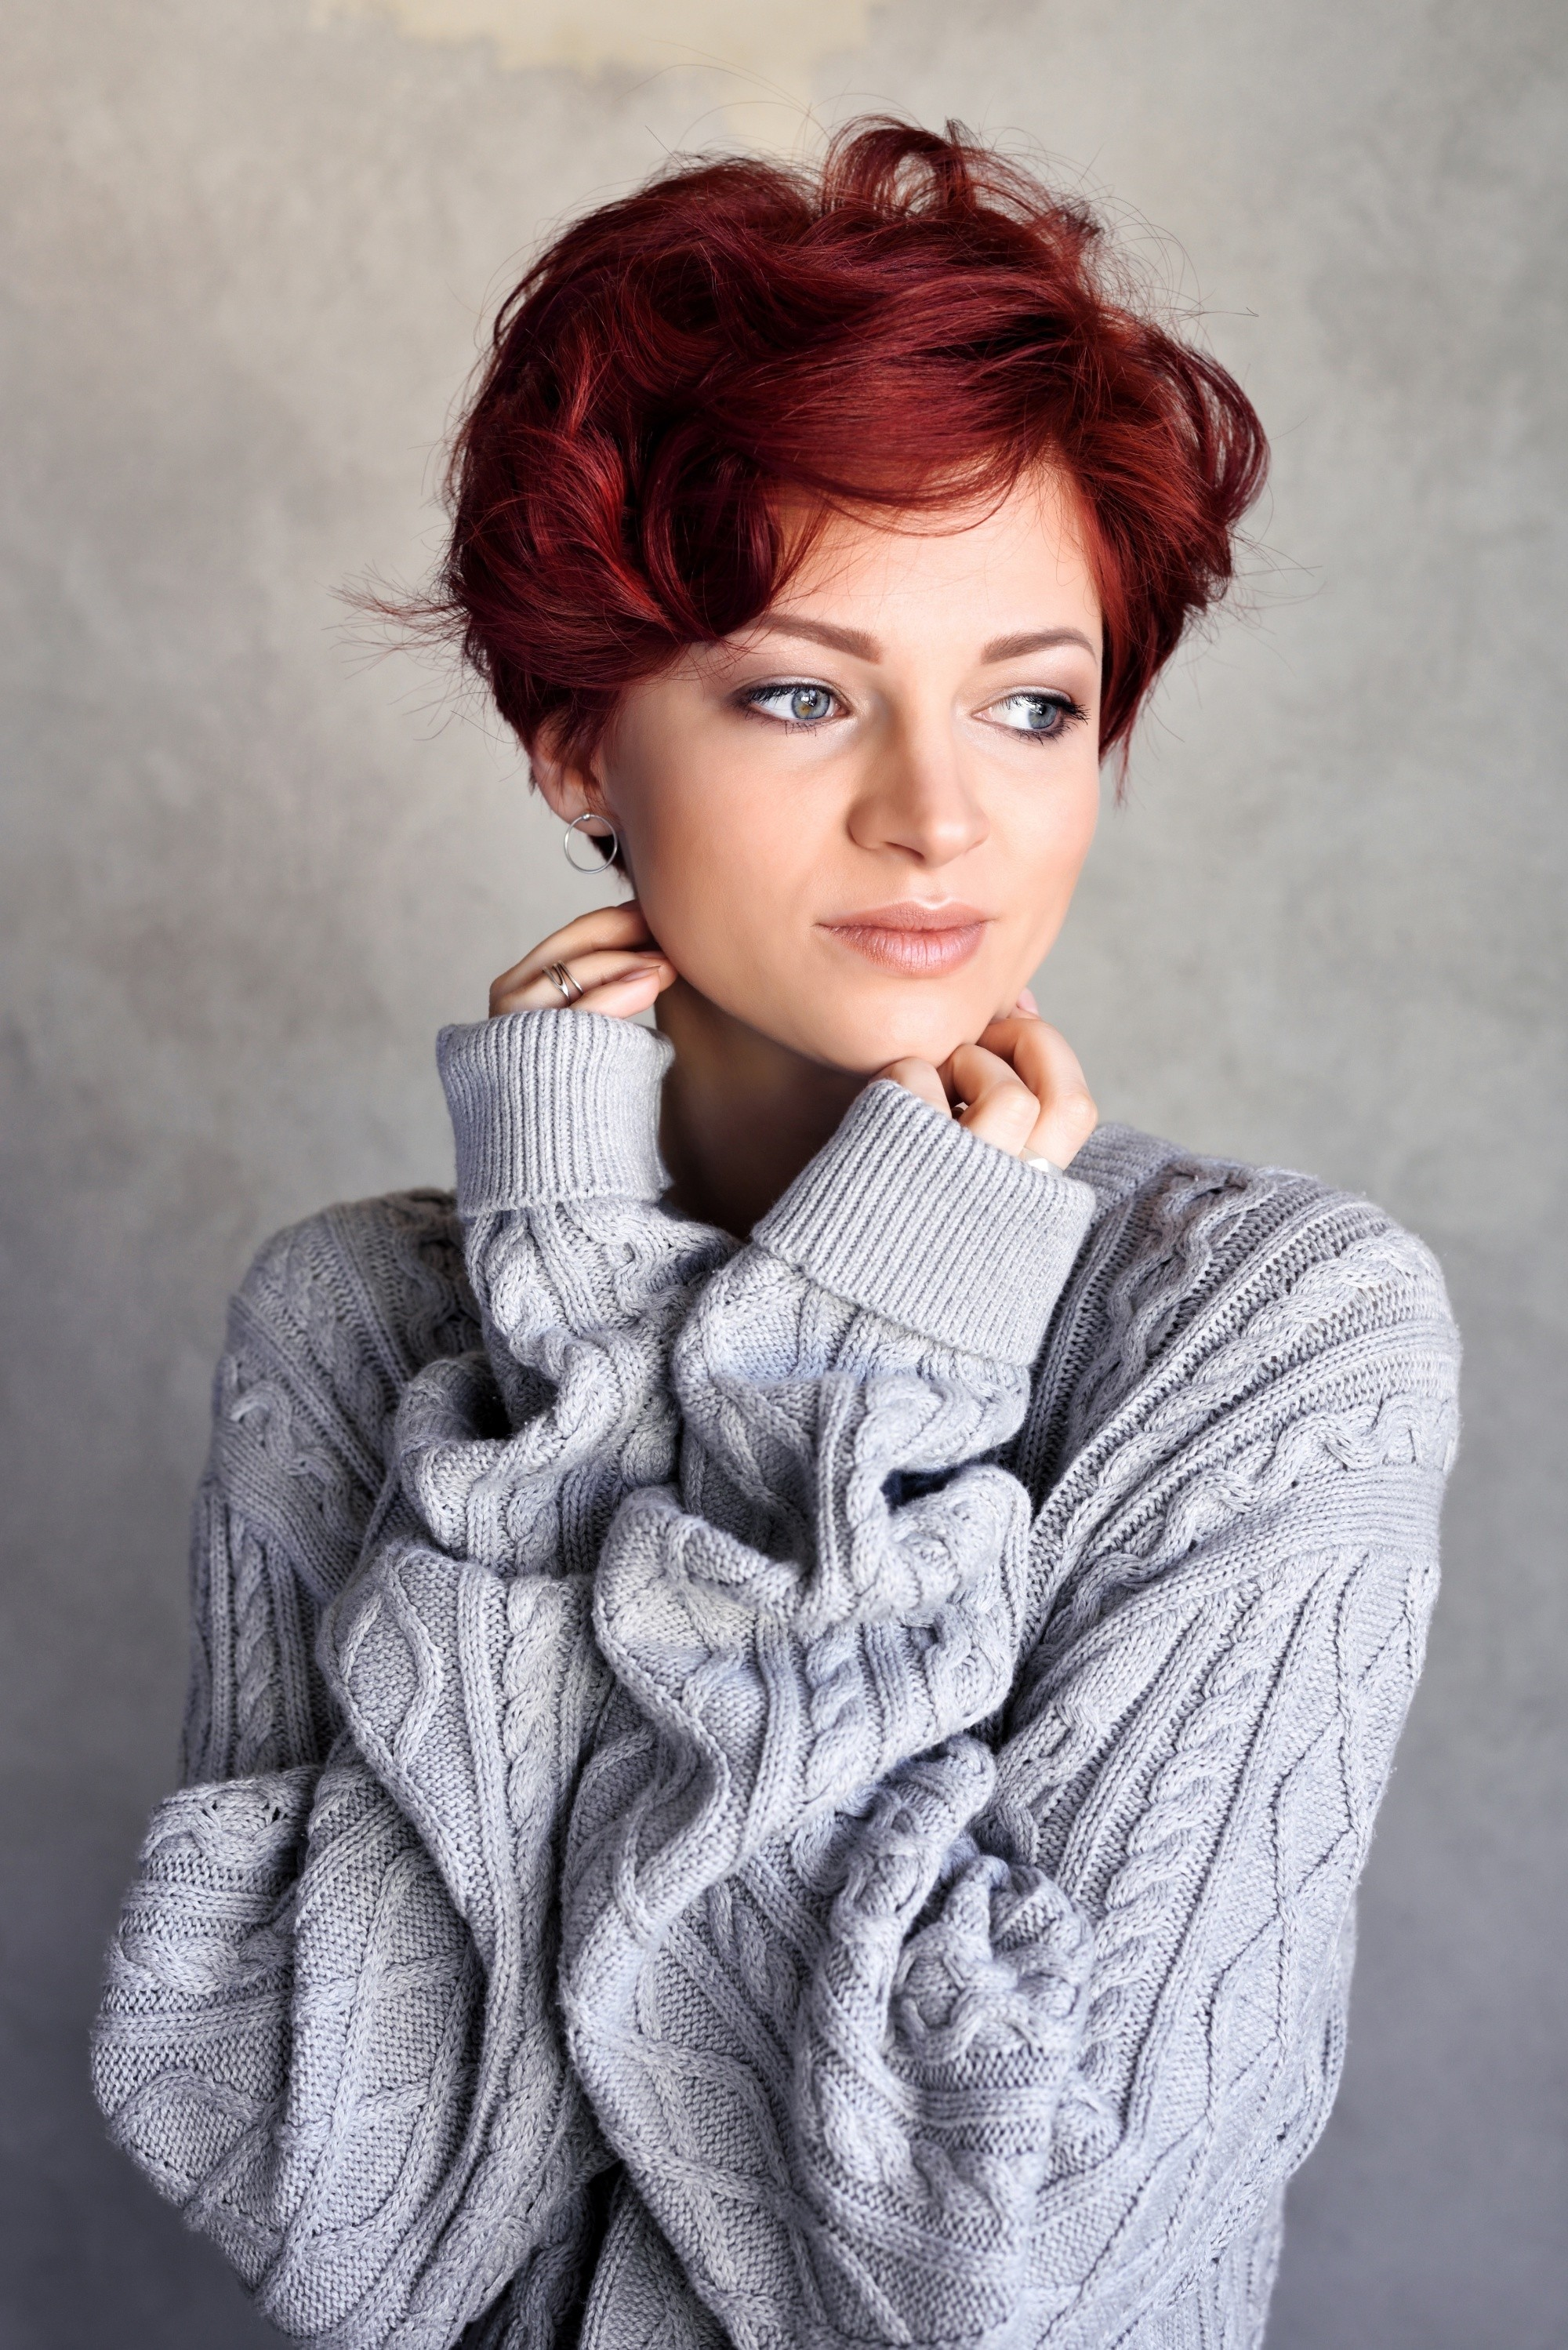 Short red hair: Woman with red tousled pixie cut wearing a gray sweater